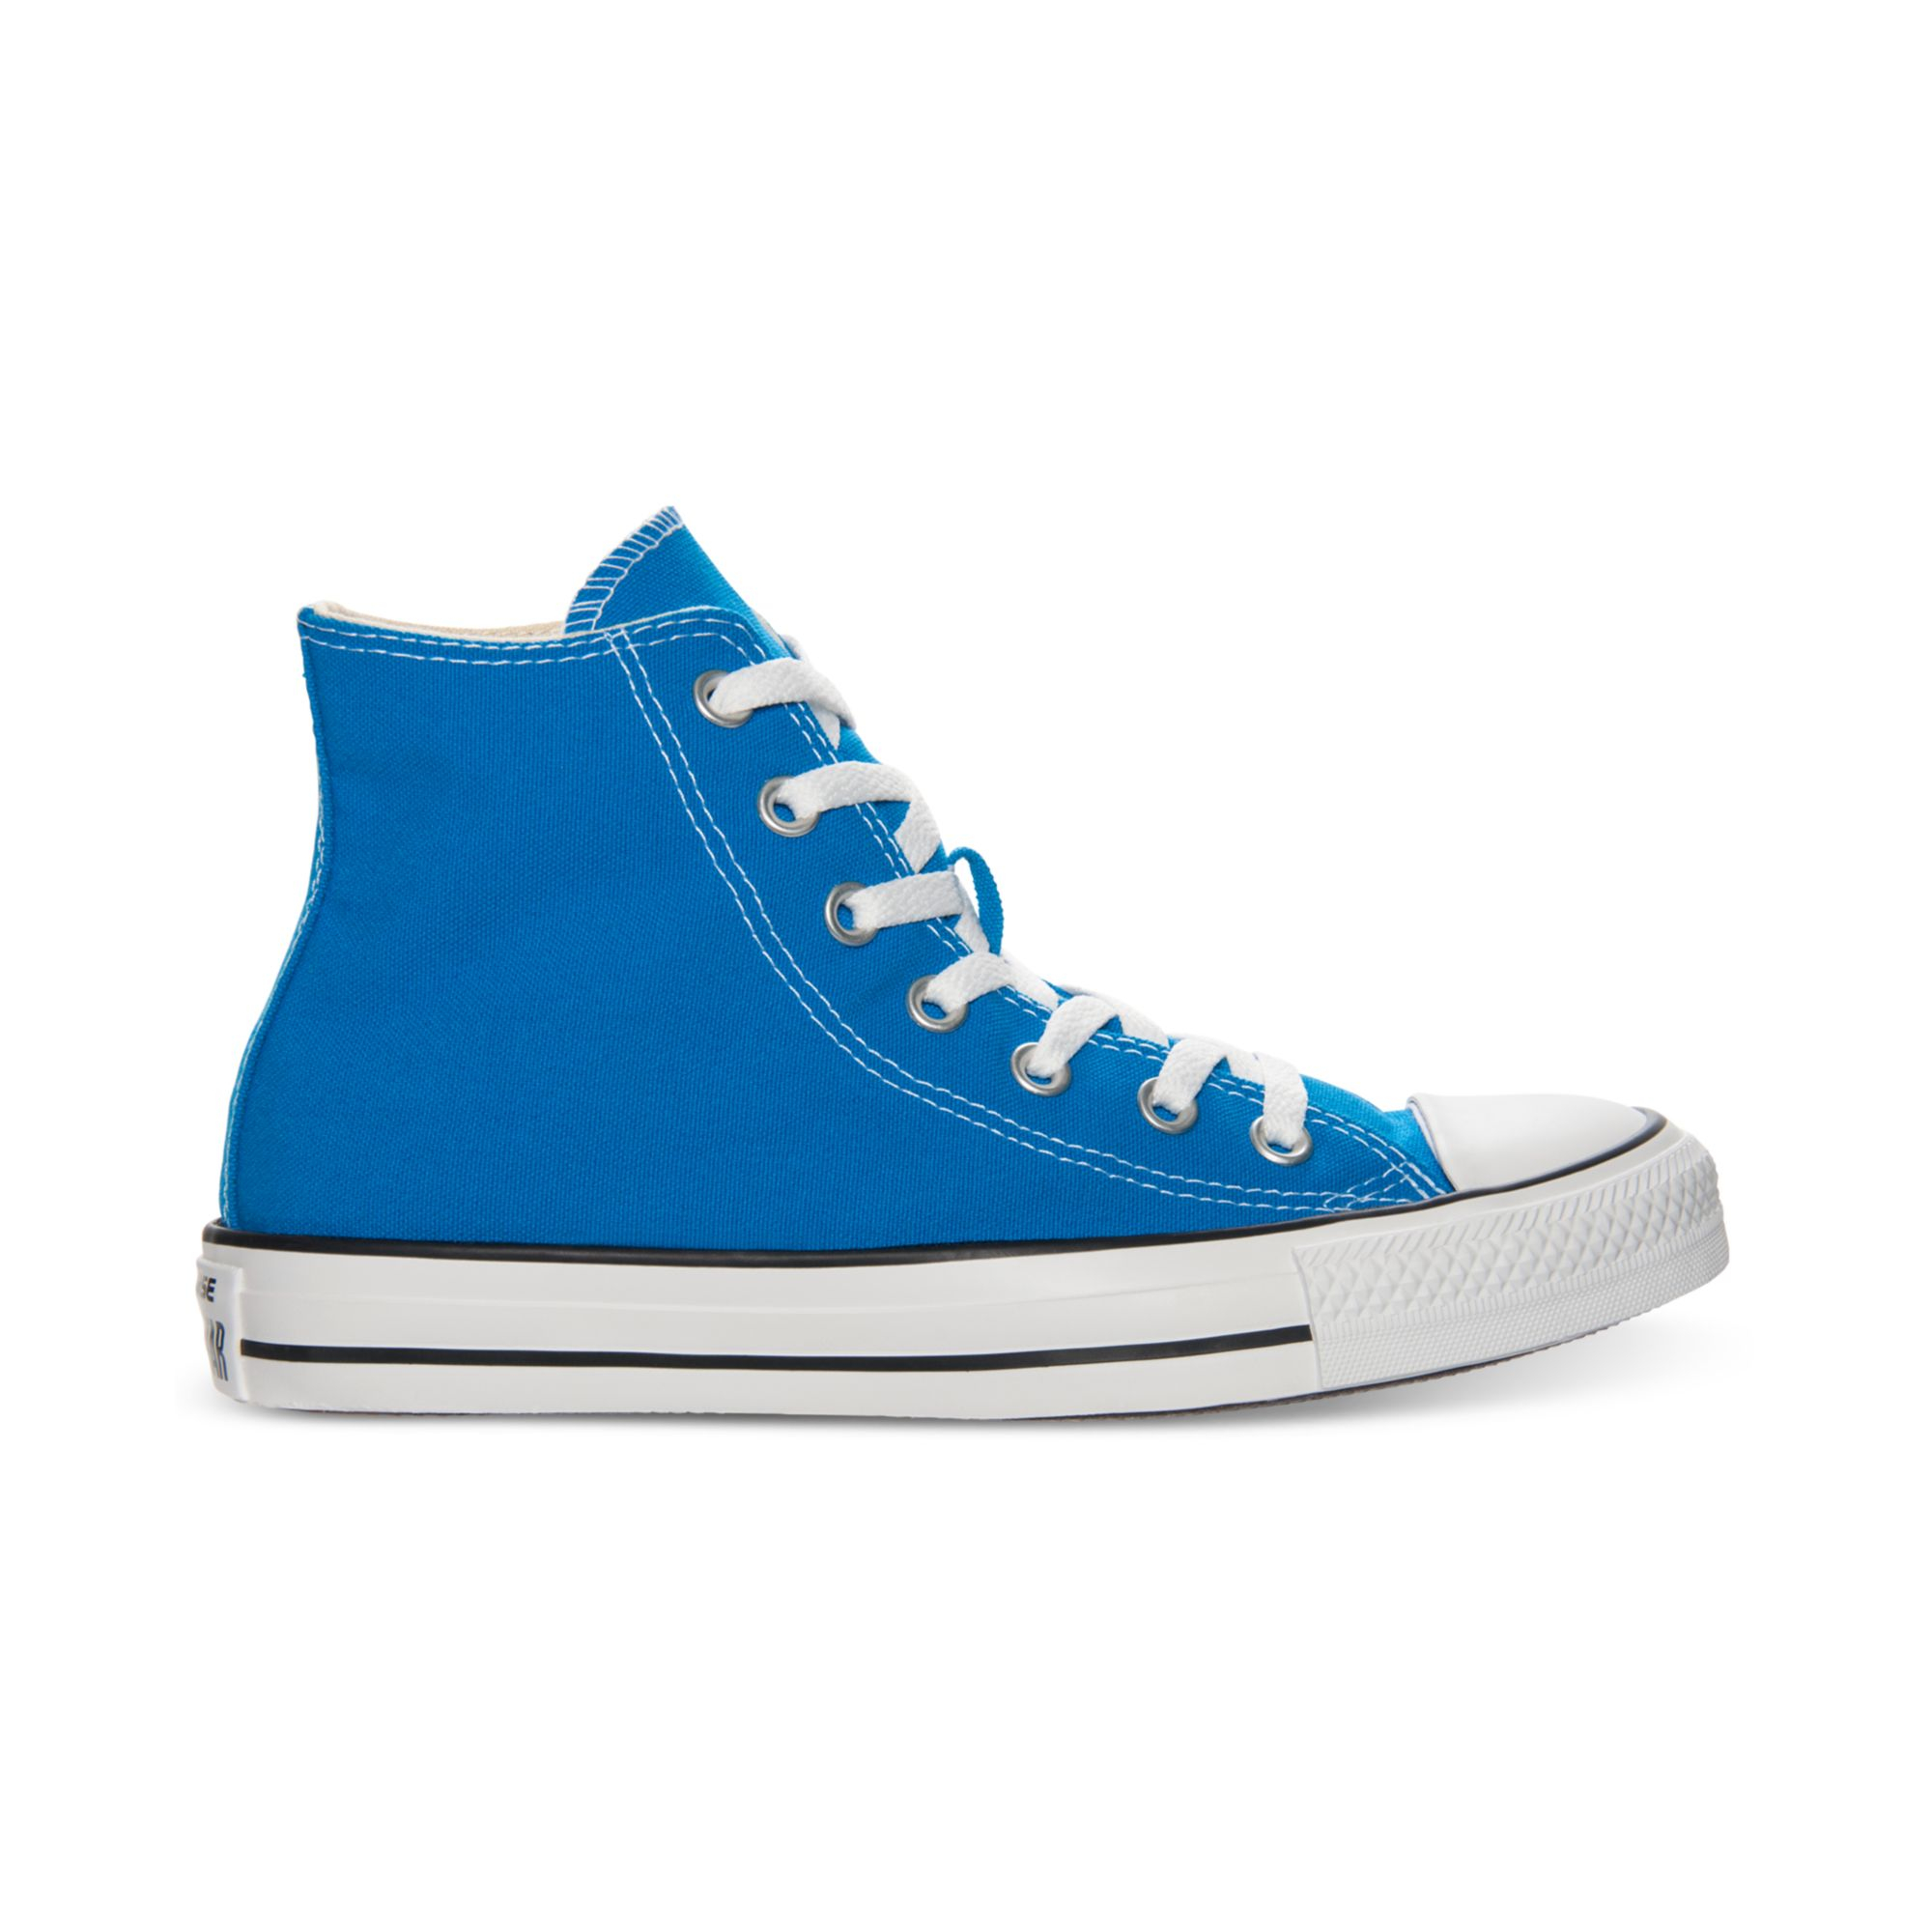 37819b1b1f70b6 Lyst - Converse Chuck Taylor Hi Top Casual Sneakers in Blue for Men